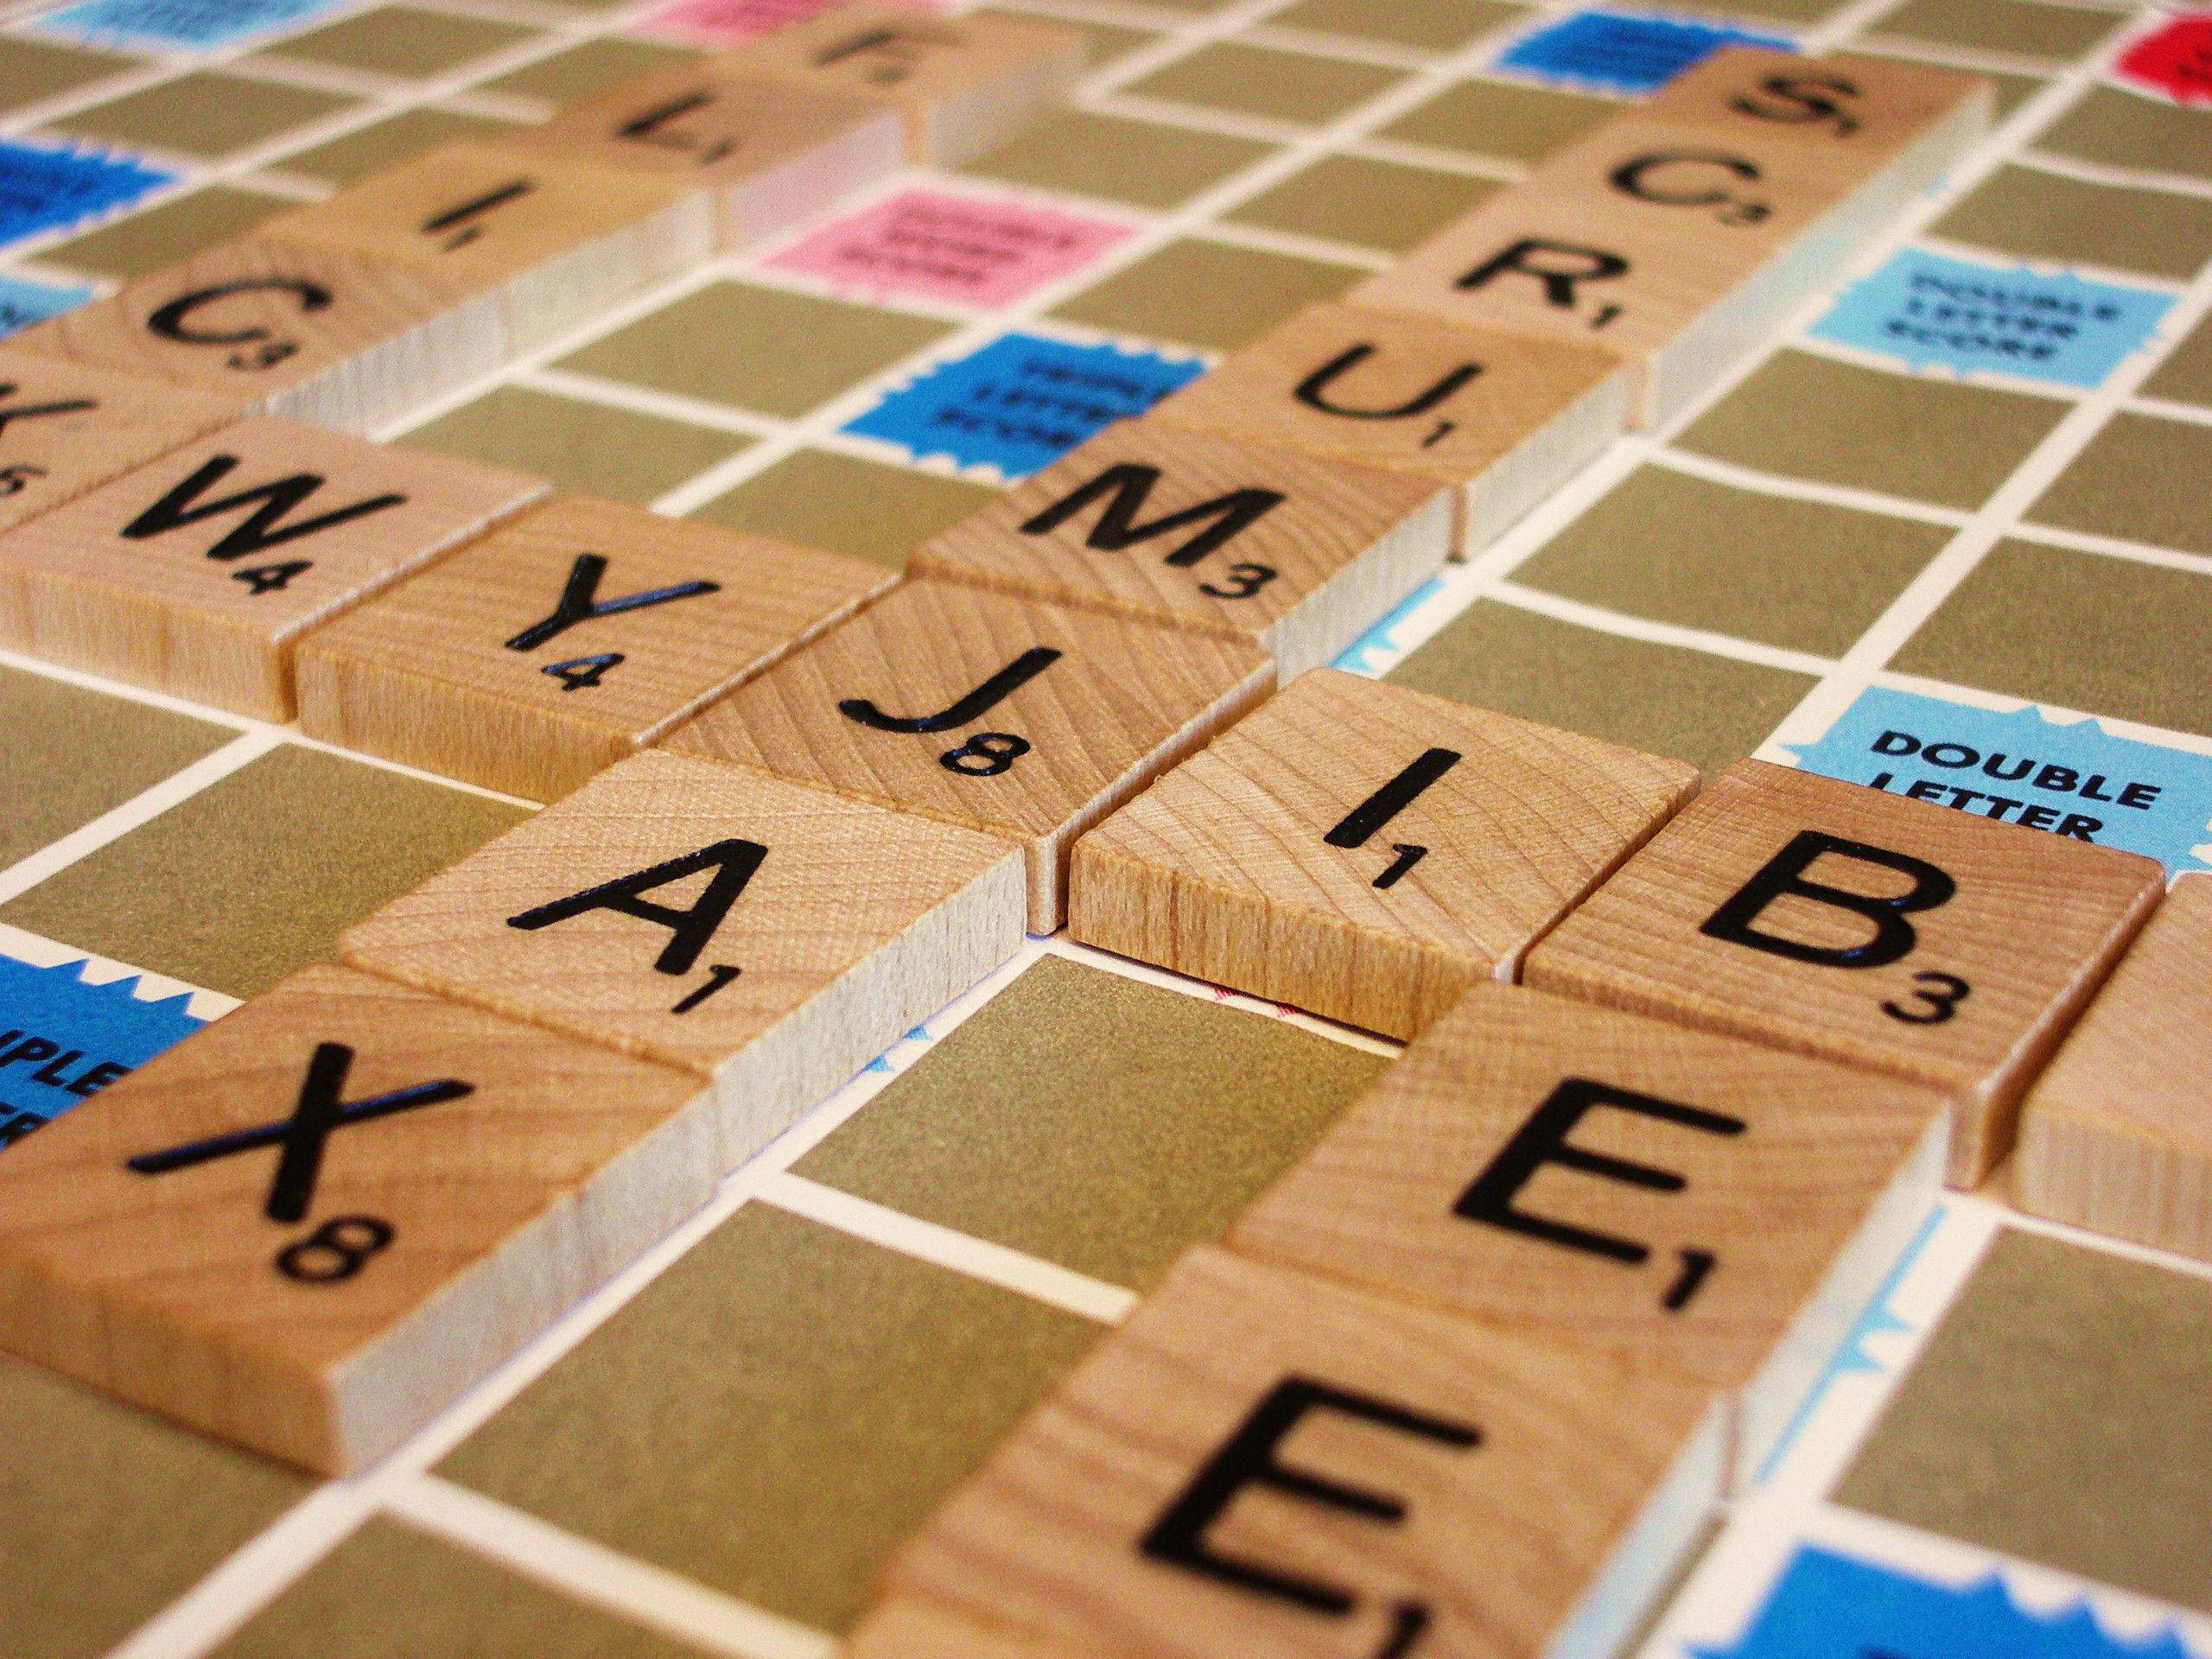 Scrabble....so many crafting possibilites with the tiles